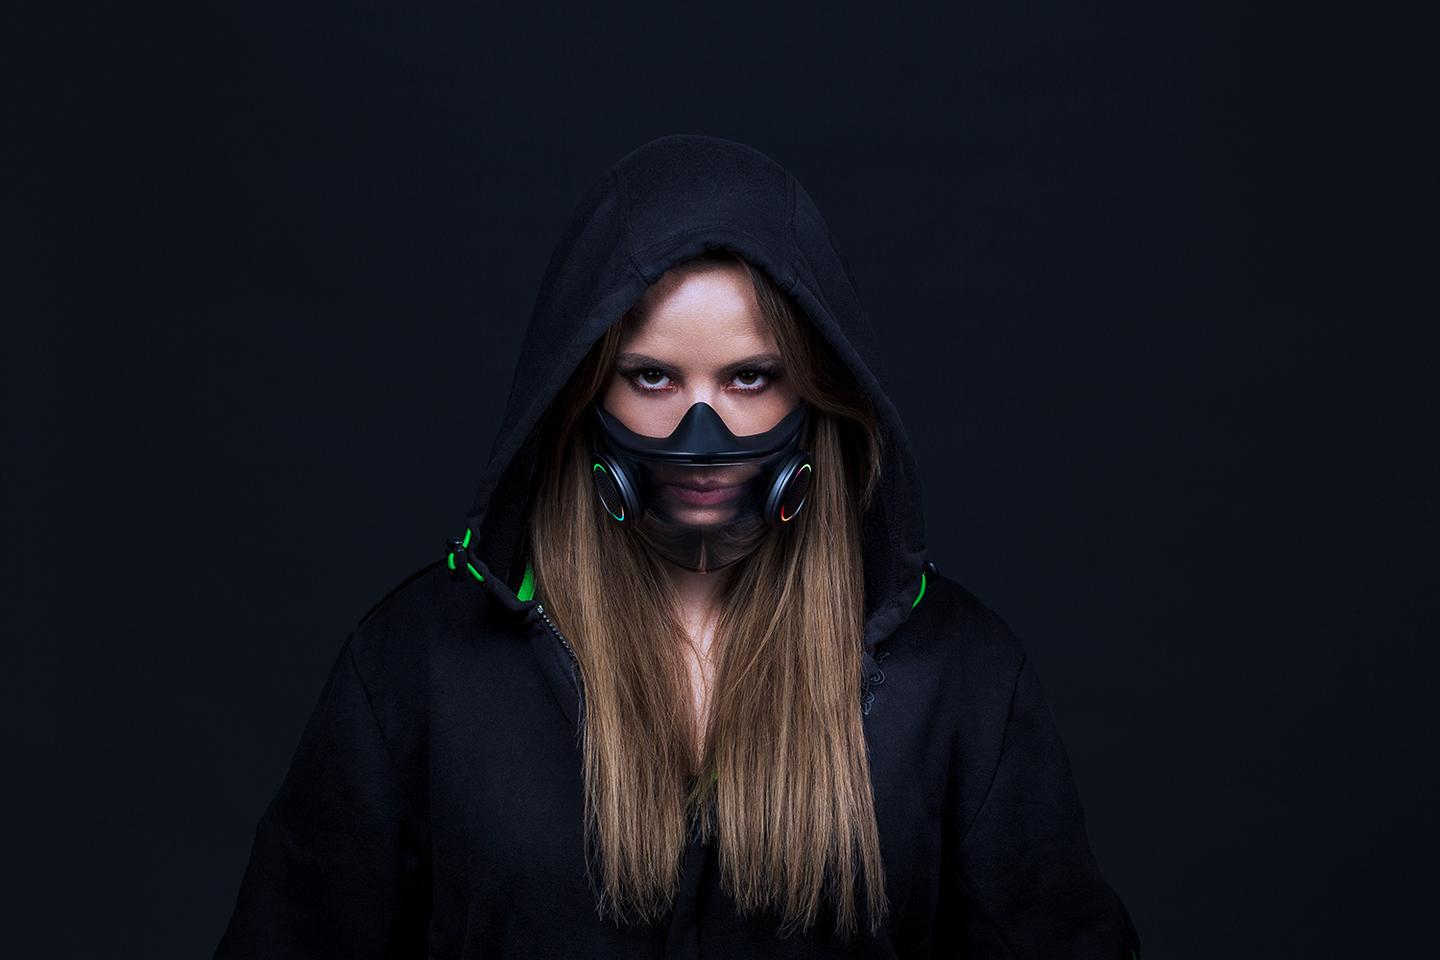 The mask is transparent, allowing the wearer's mouth movements to be visible